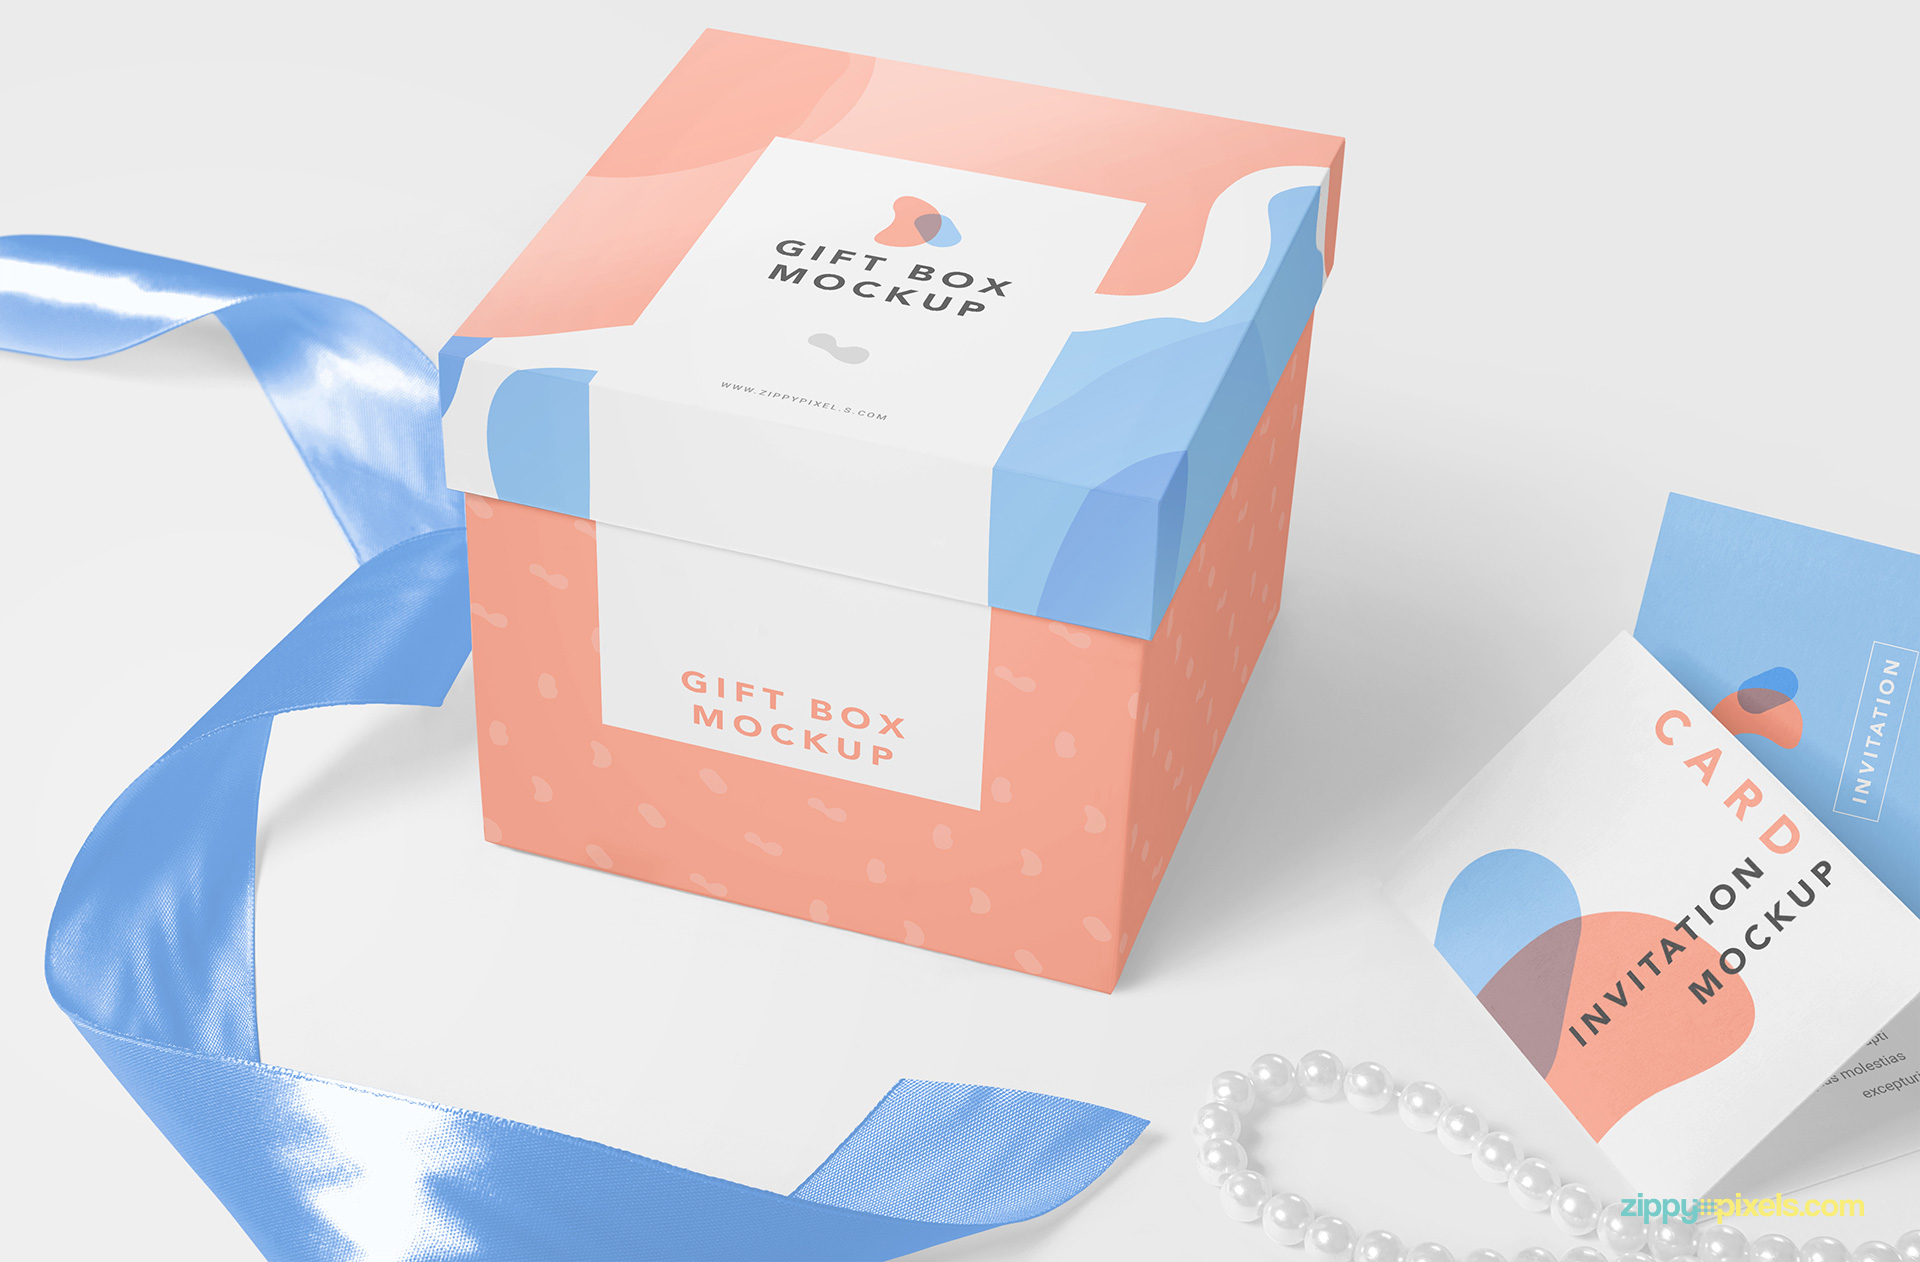 Fully layered gift mockup PSD.